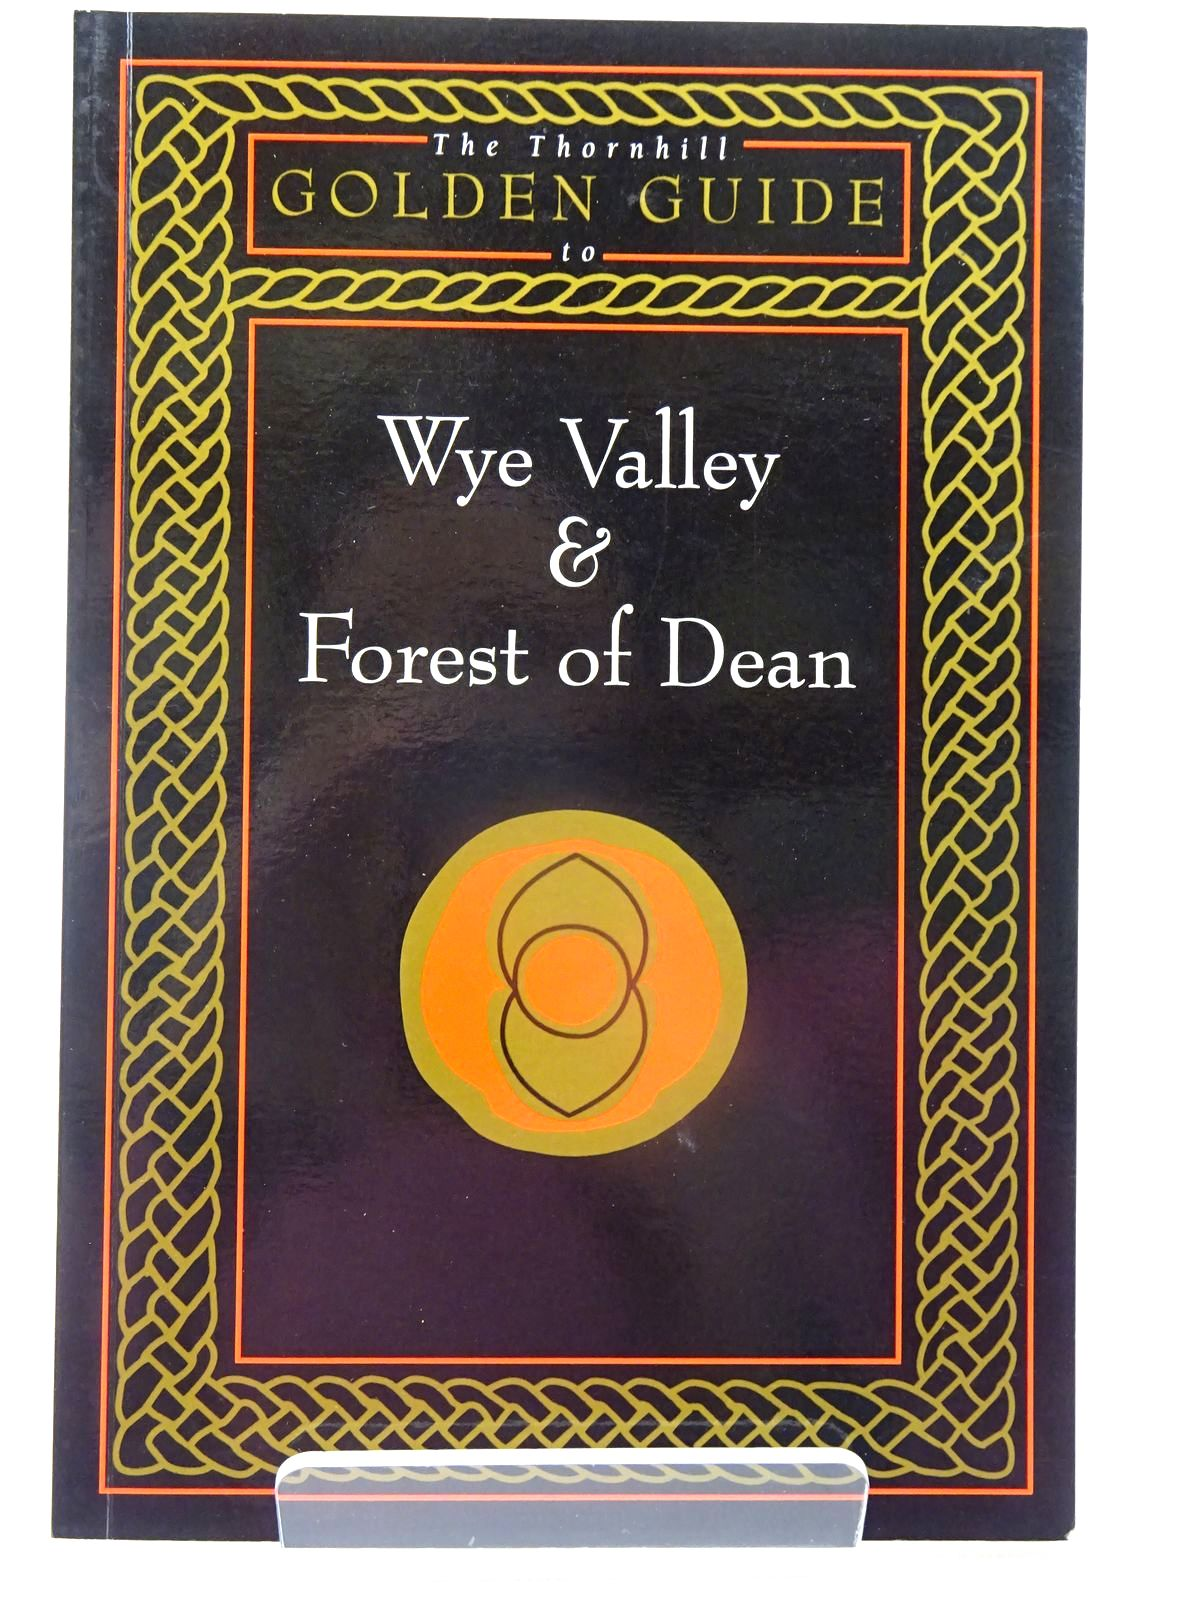 Photo of THE THORNHILL GOLDEN GUIDE TO WYE VALLEY & FOREST OF DEAN